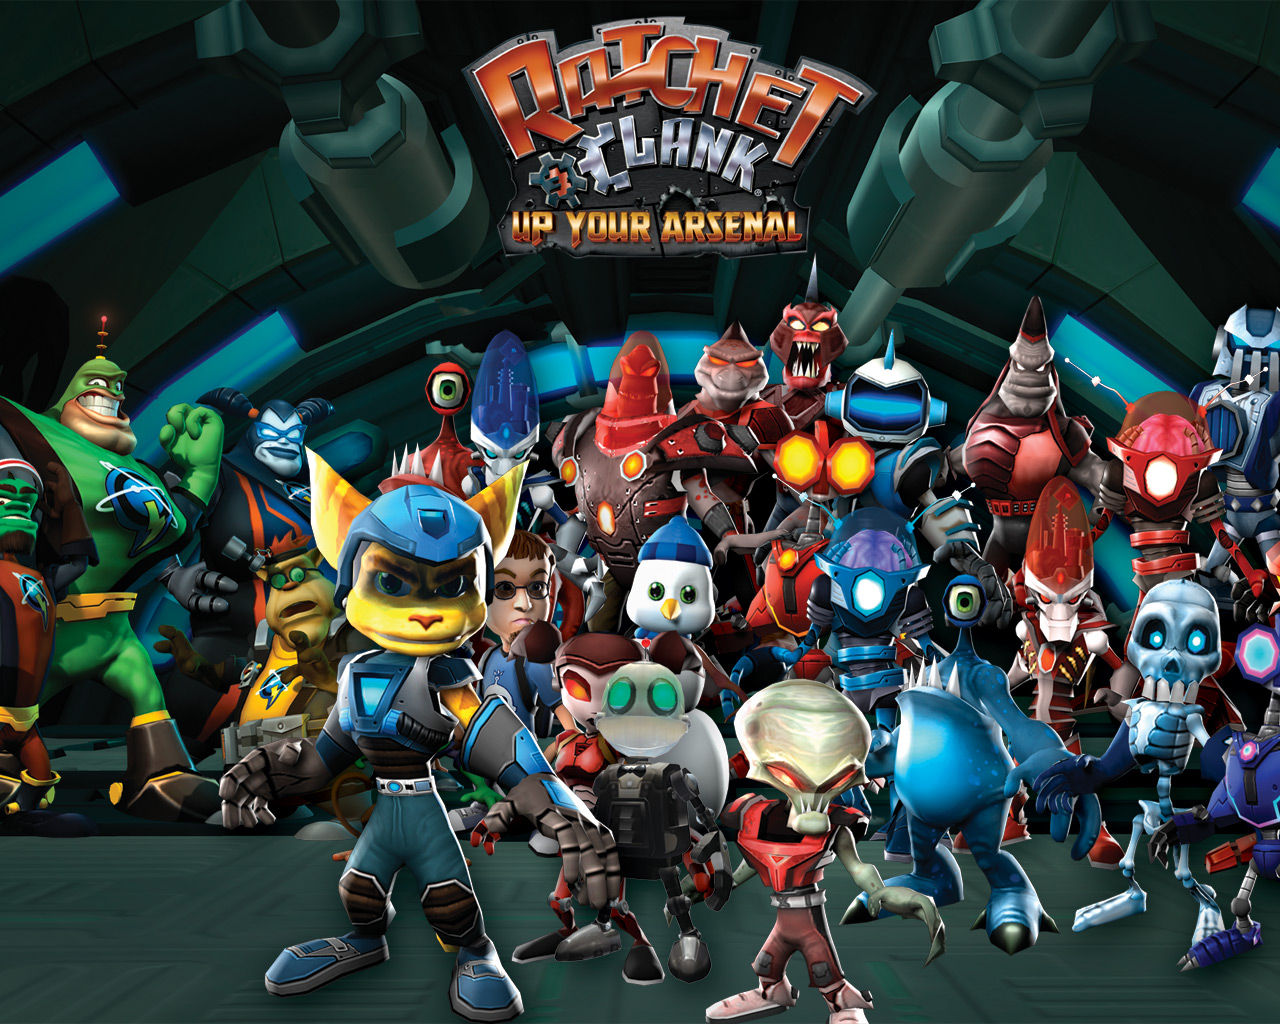 6 Ratchet Clank Up Your Arsenal